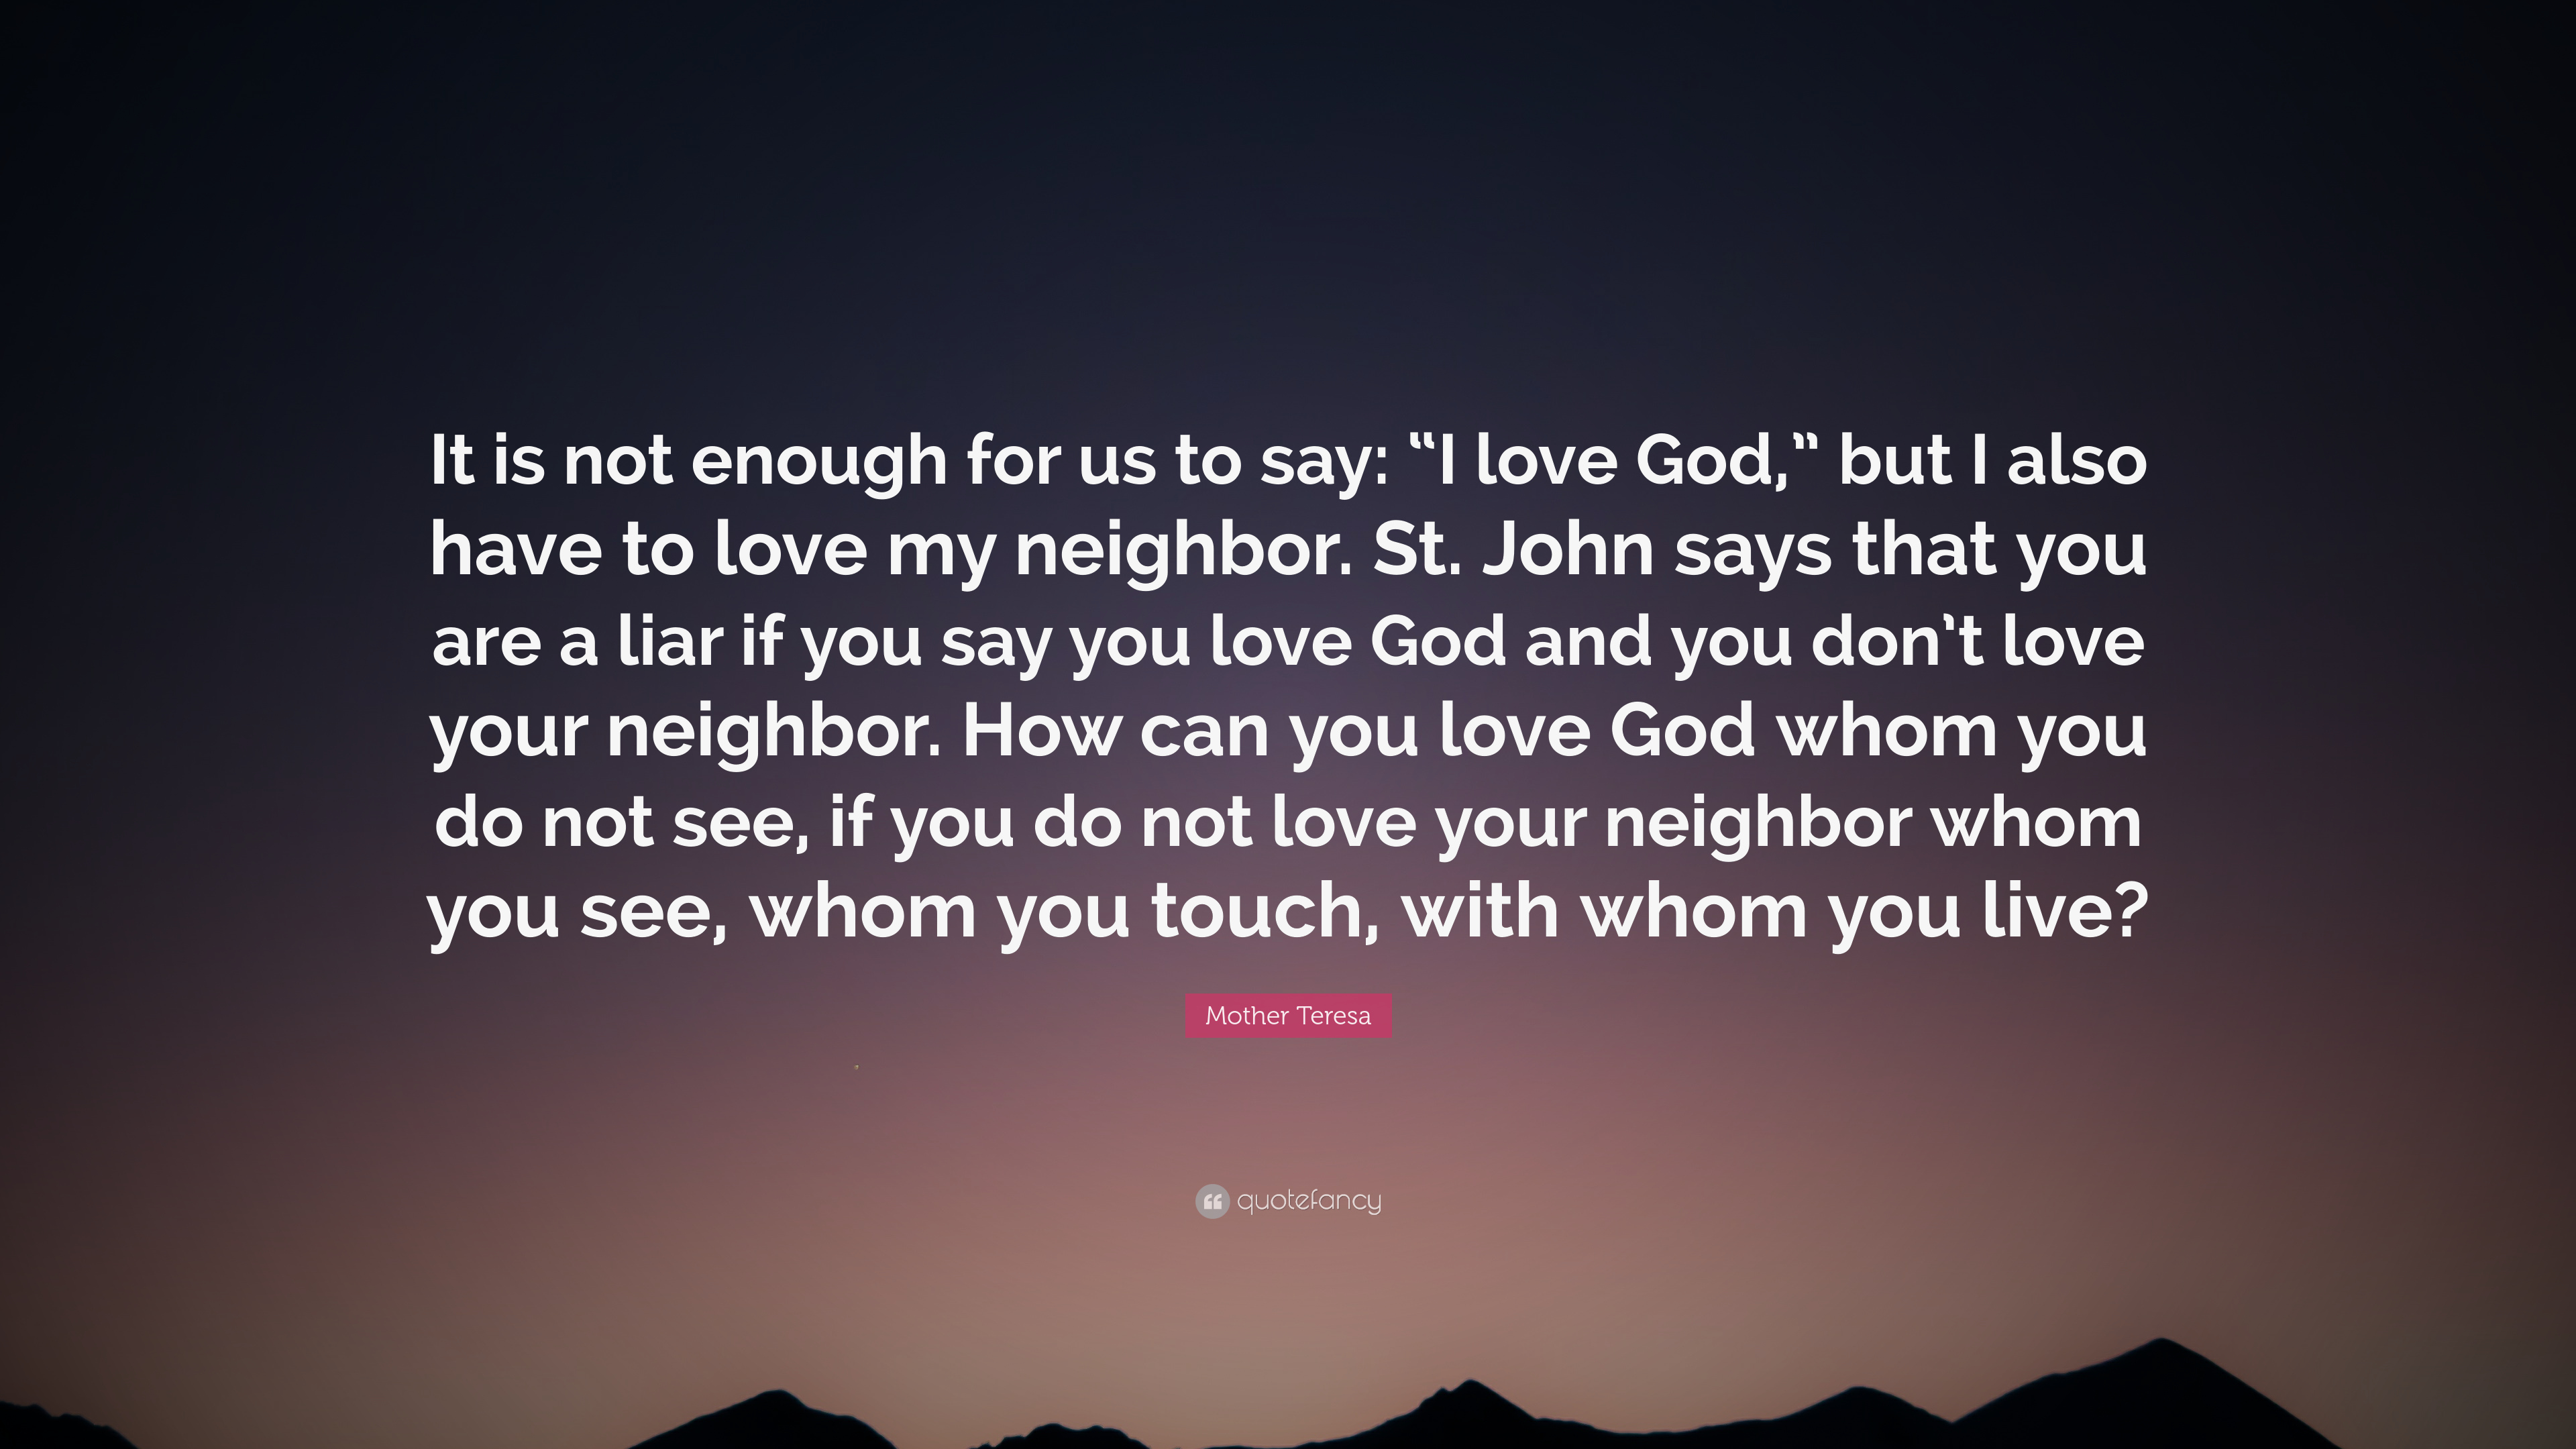 Mother Teresa Quote It is not enough for us to say I love God